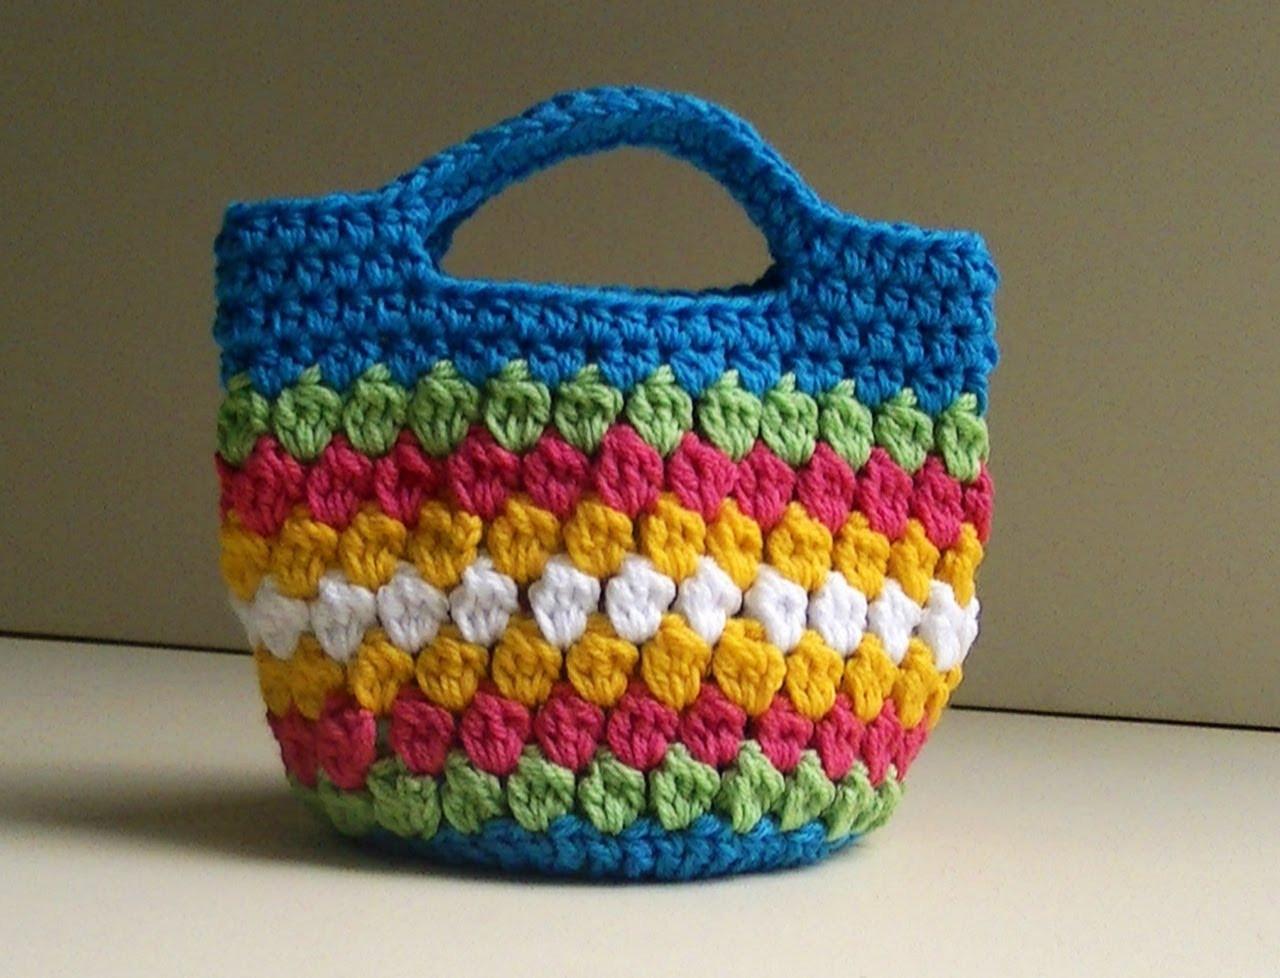 Crochet Bag Pattern Luxury Cluster Stitch Bag Crochet Video Tutorial the Of Great 50 Pictures Crochet Bag Pattern